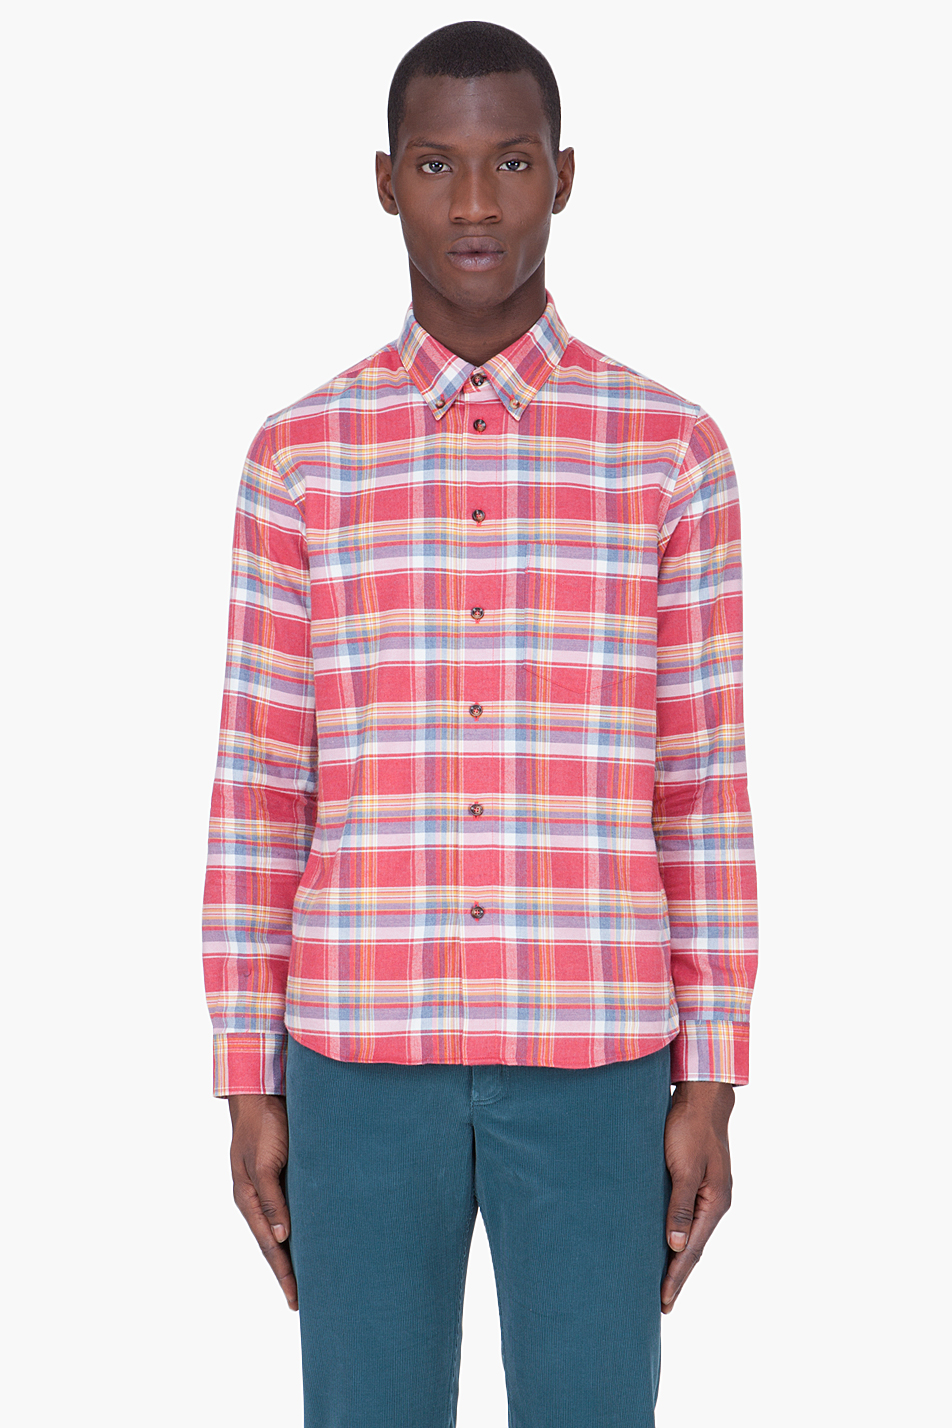 A p c coral plaid vintage shirt in pink for men coral for Coral shirts for guys